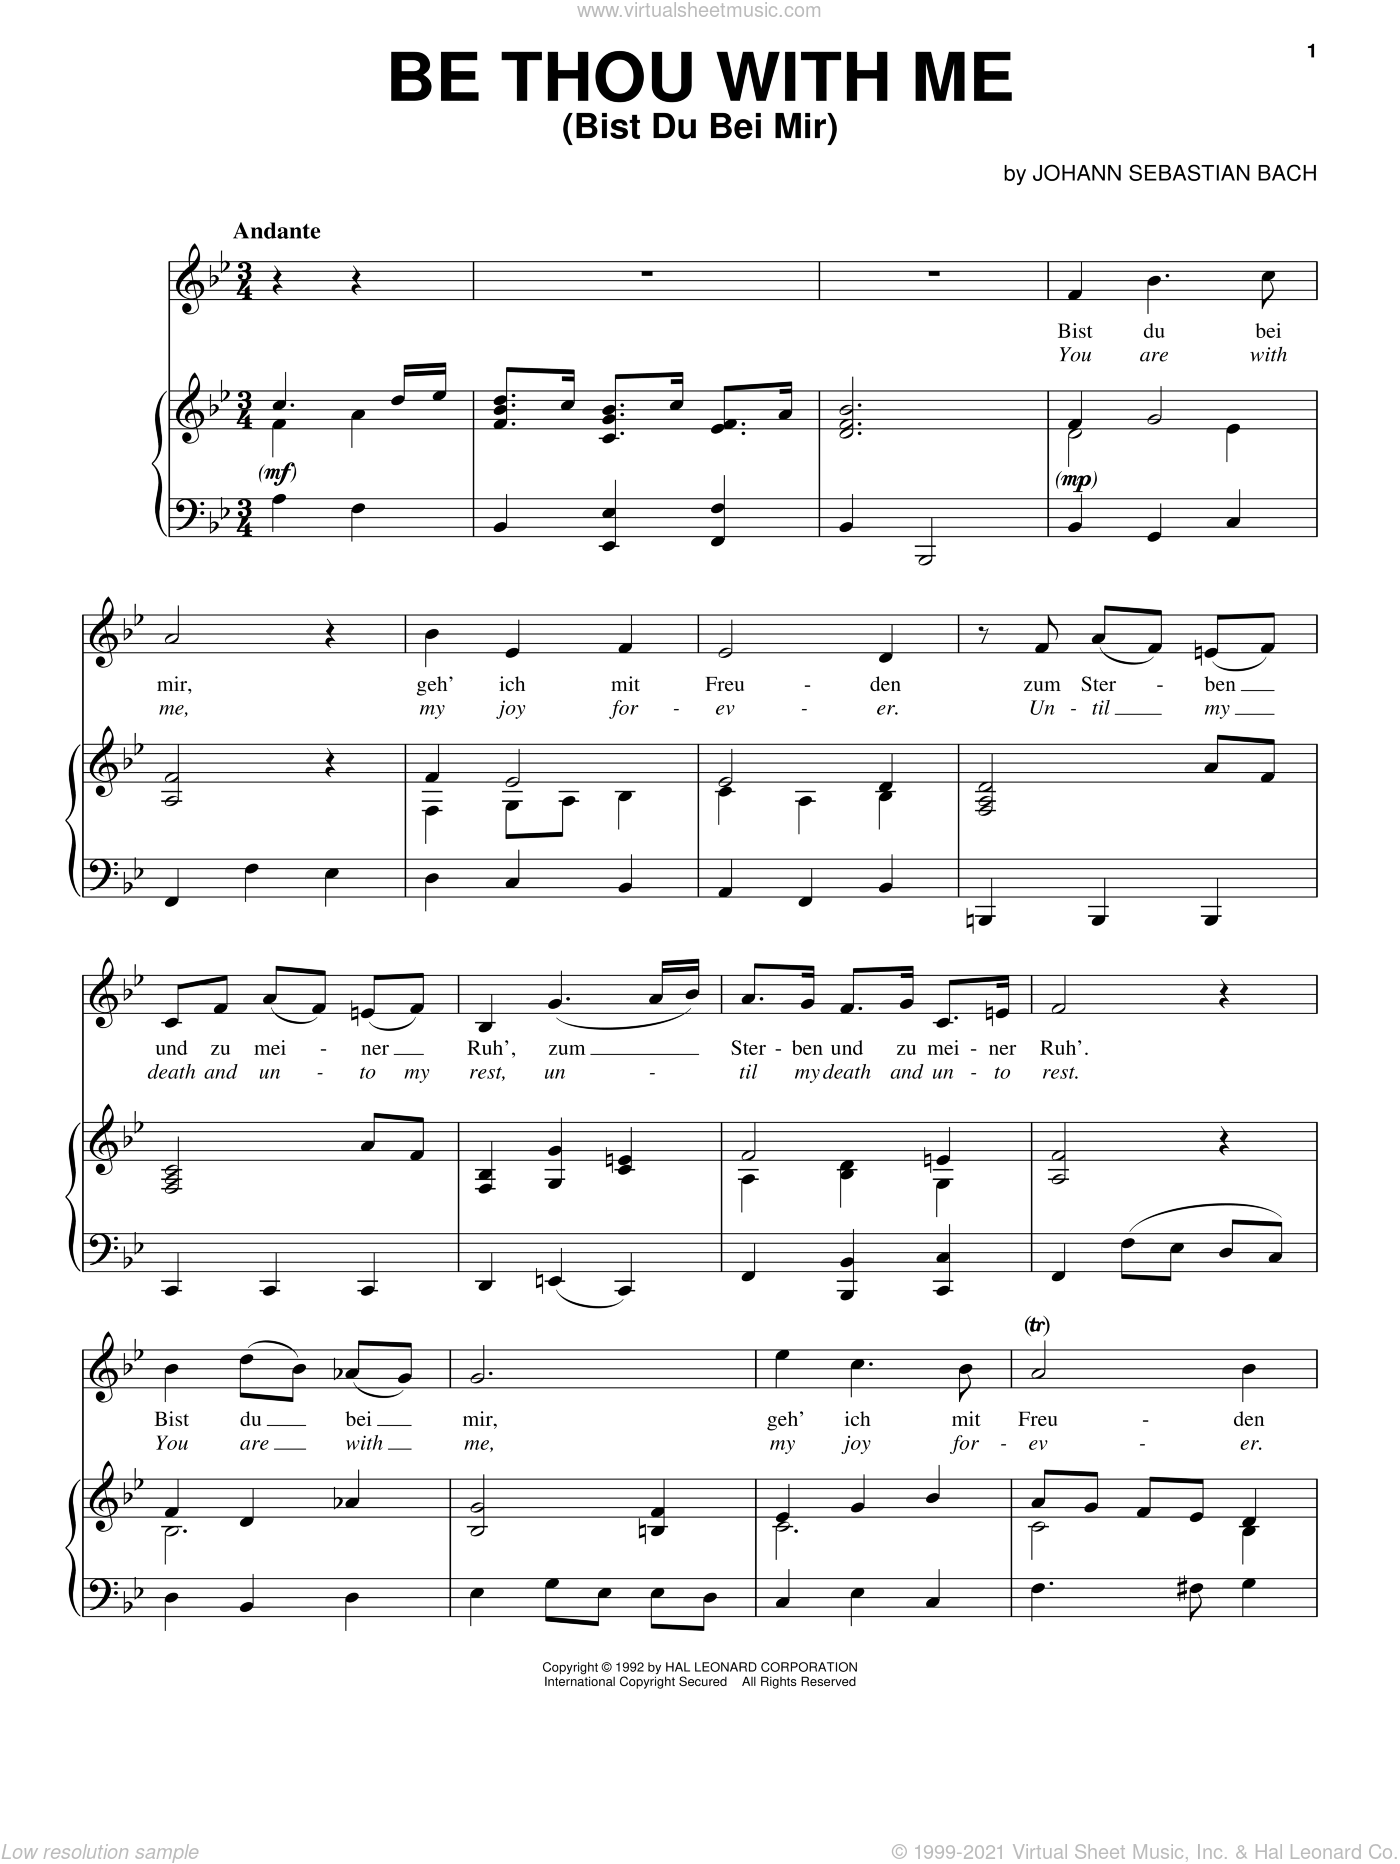 Bist Du Bei Mir (You Are With Me) sheet music for voice, piano or guitar by Johann Sebastian Bach